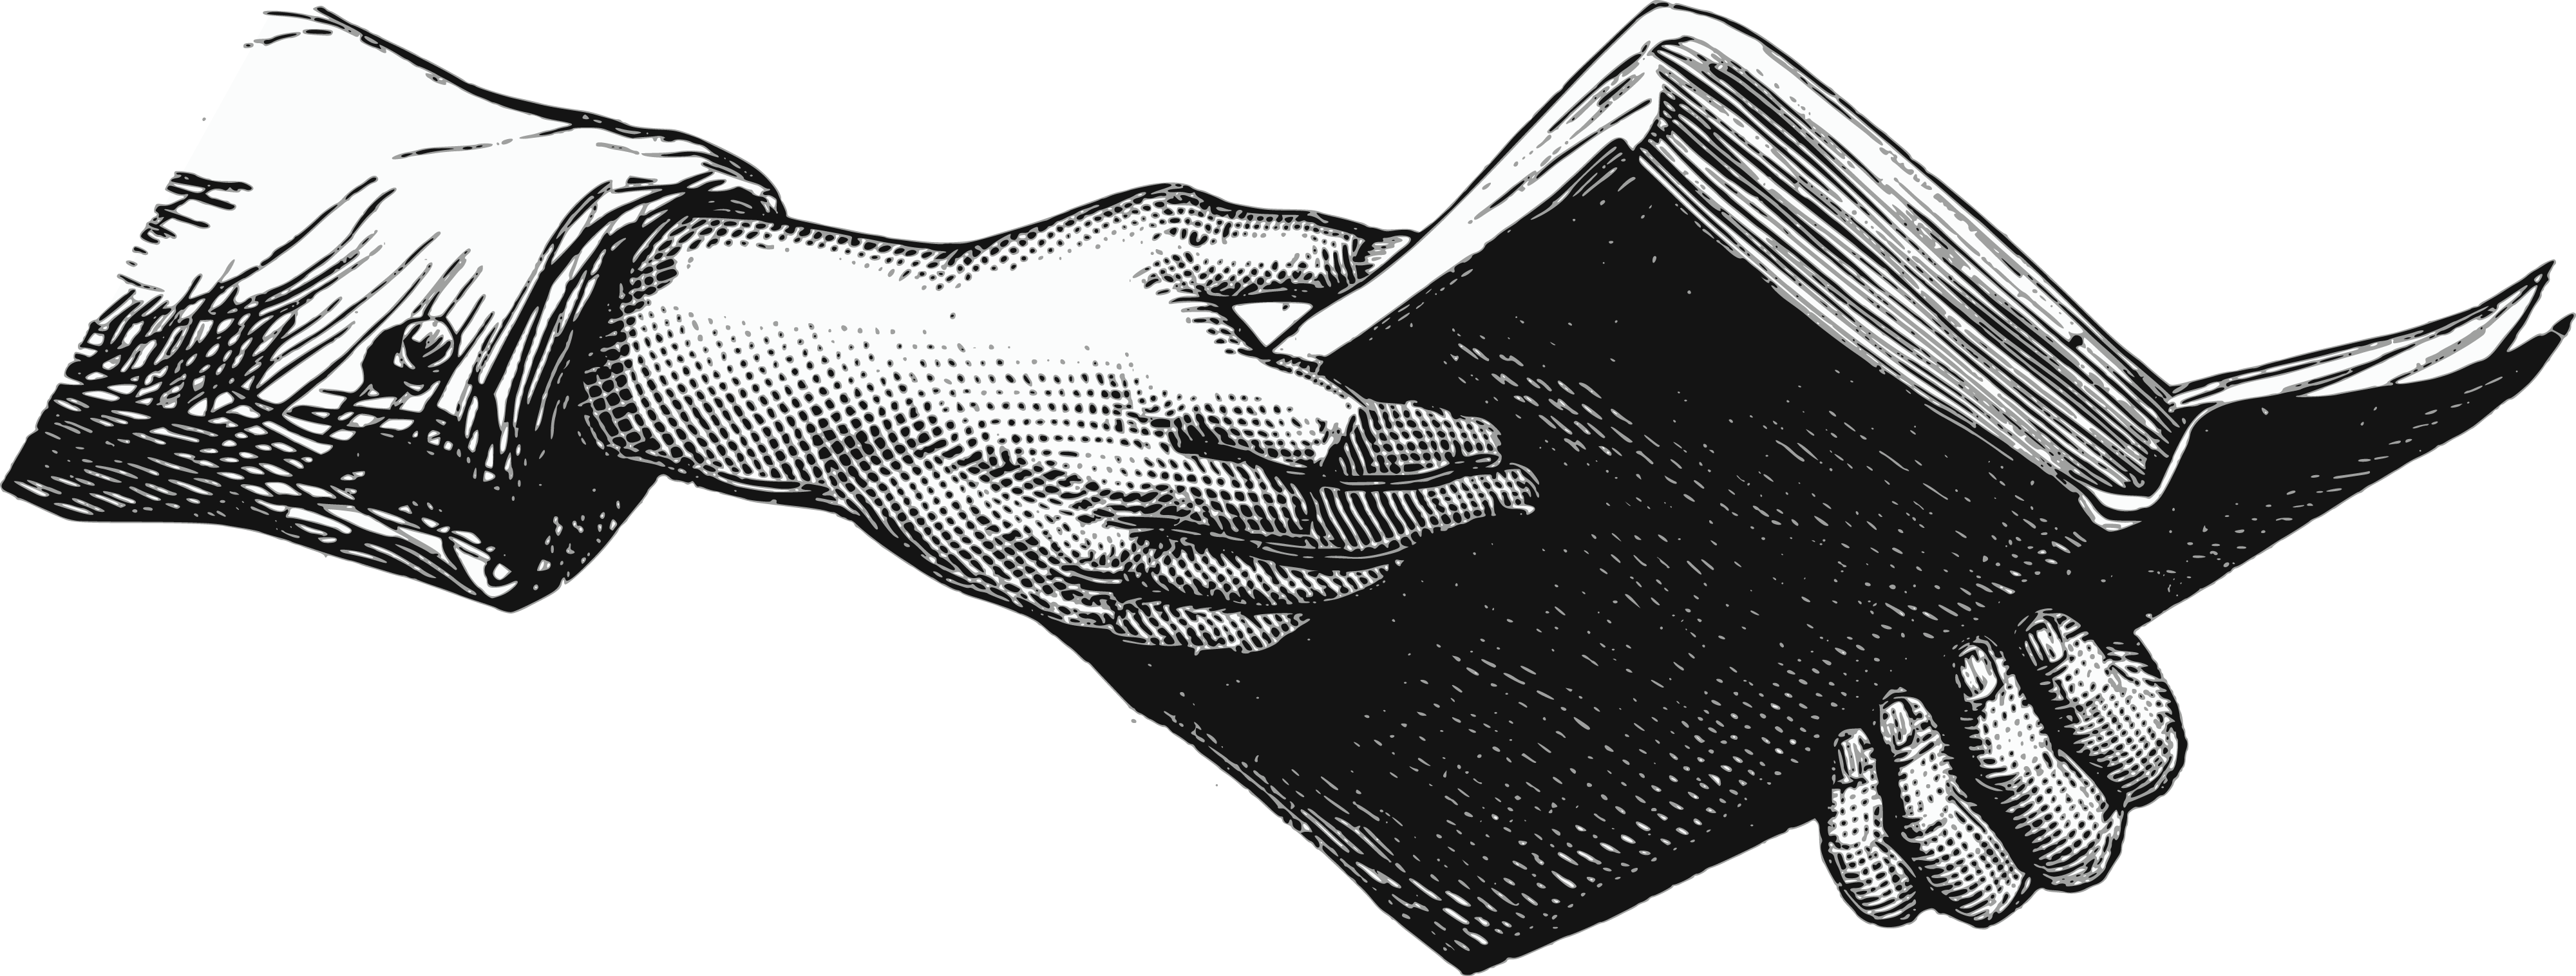 Hands Holding Book Clipart.